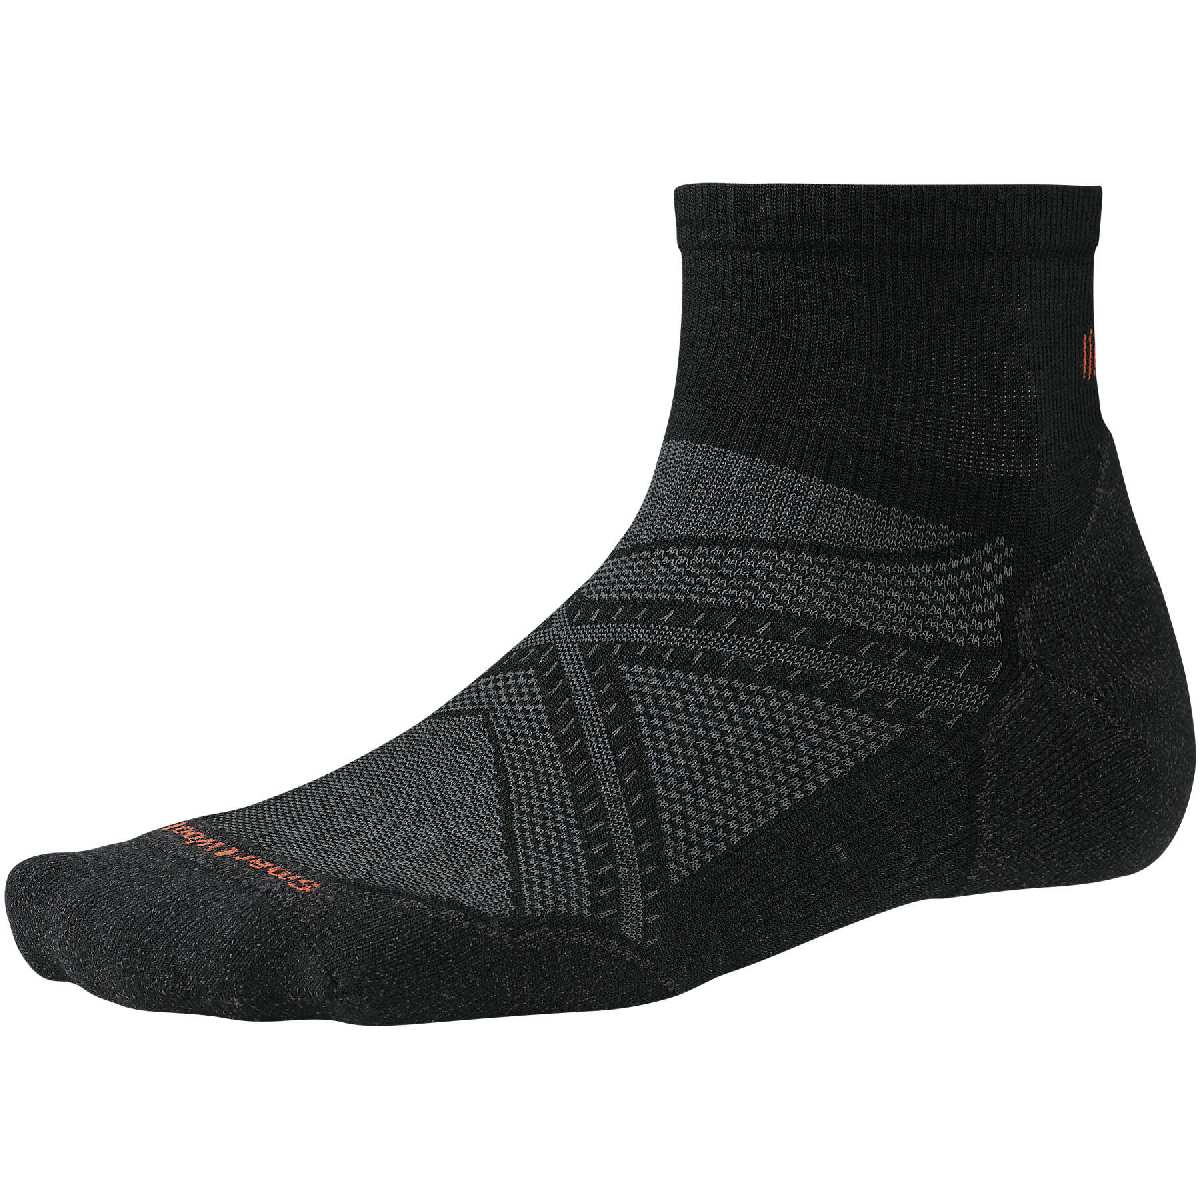 SmartWool PhD Light Elite Mini Running Sock Size XL Black U.S.A. & Canada